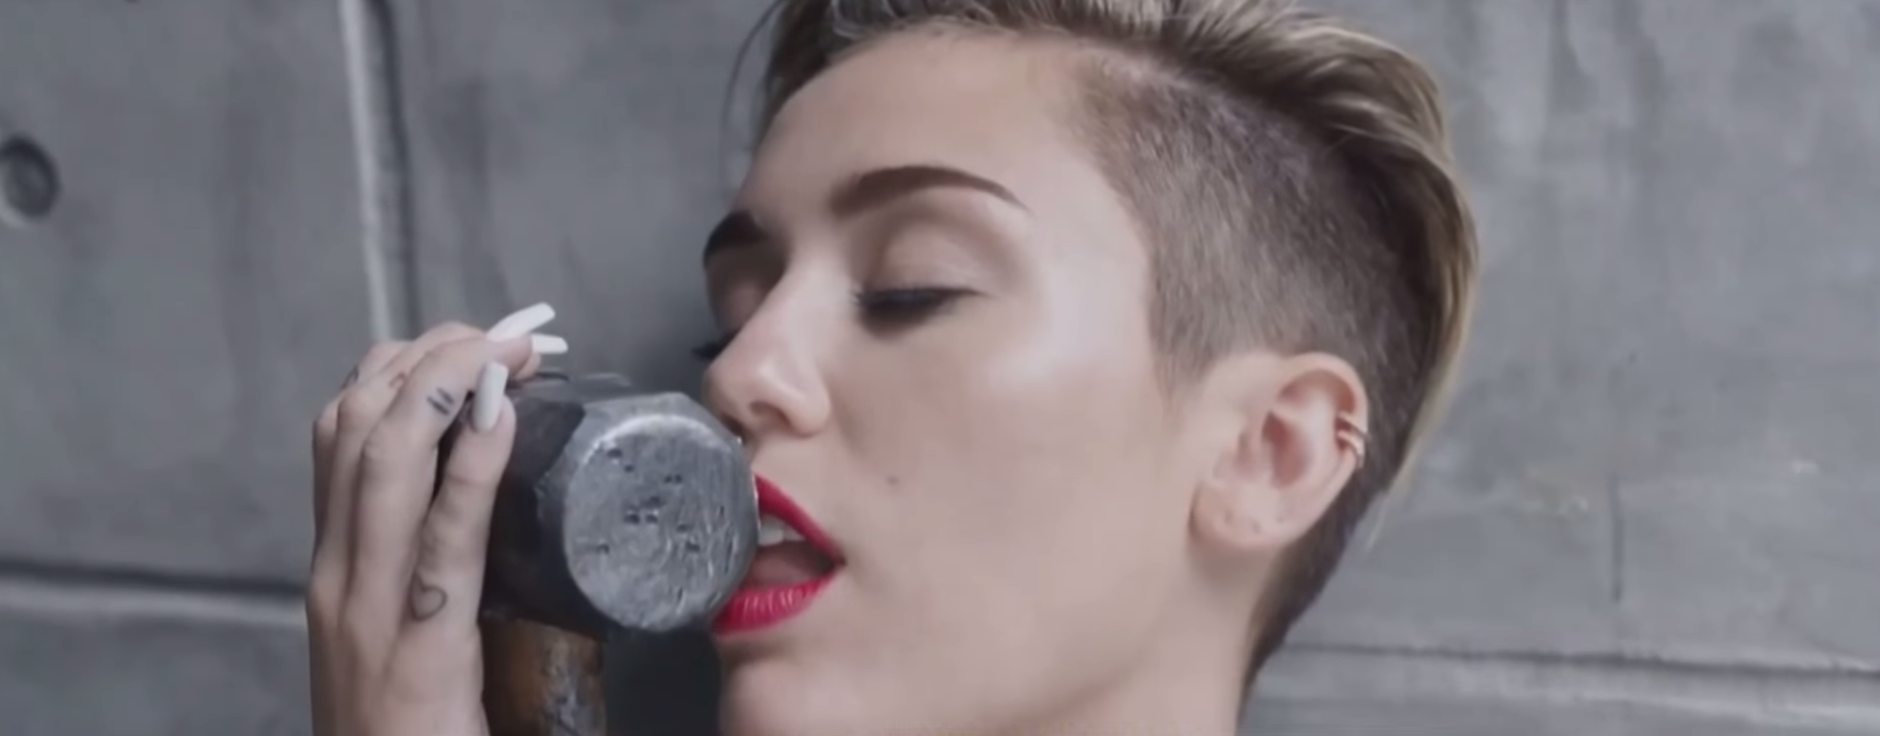 Miley Cryus, host of the 2015 VMA. Image by: MTV / YouTube